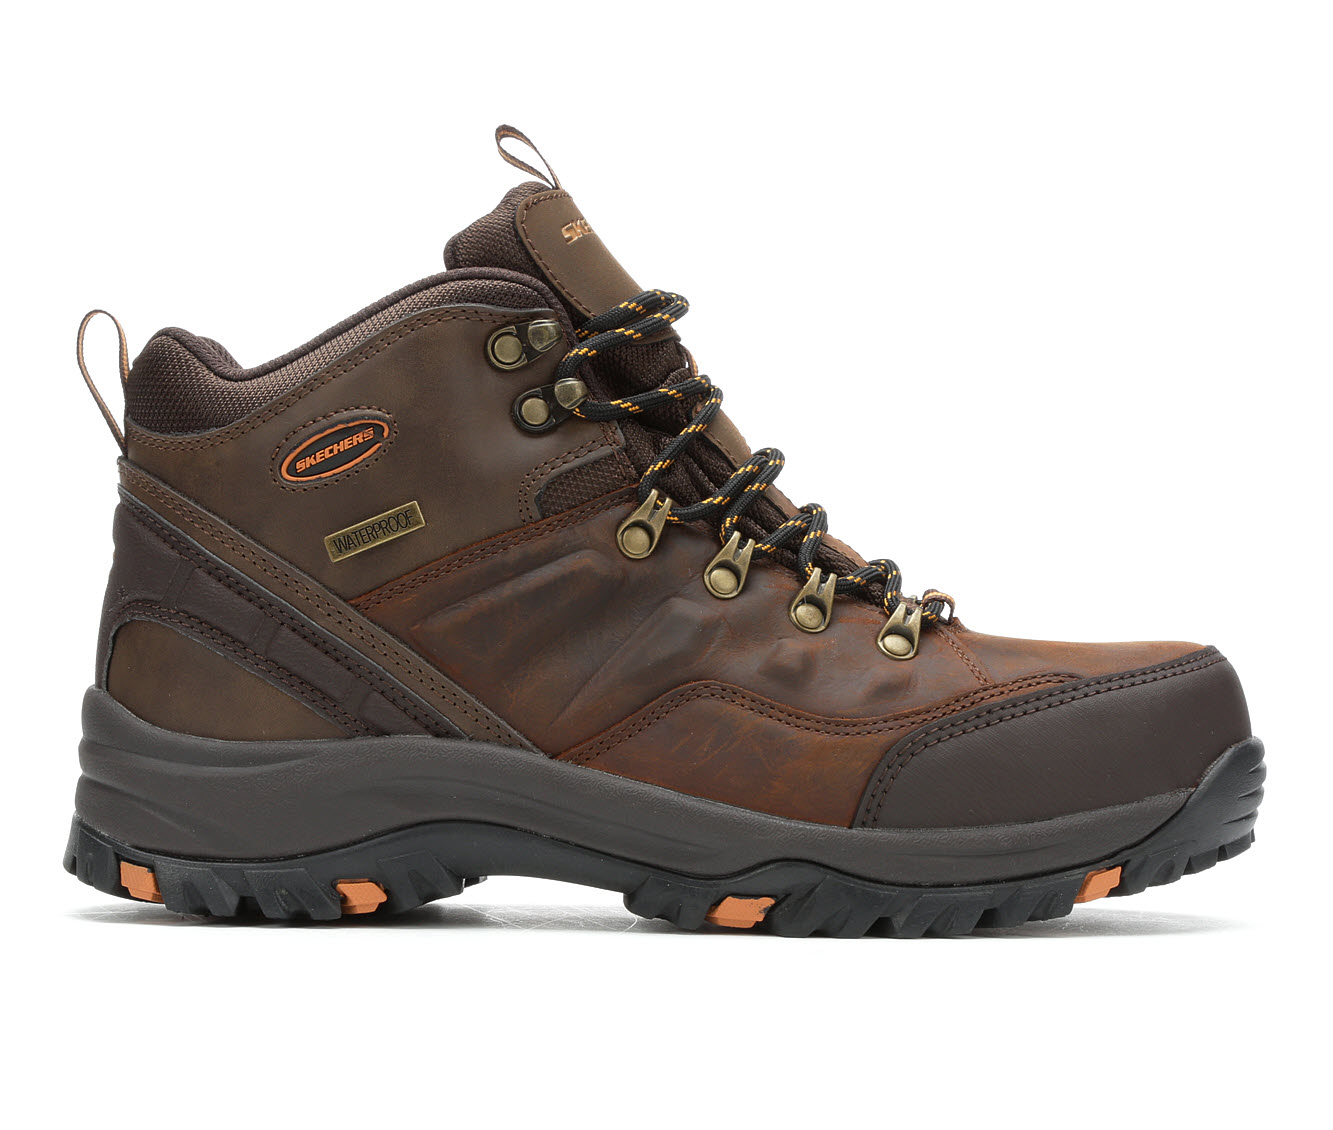 Skechers Traven 65229 Men's Boots (Brown Leather)